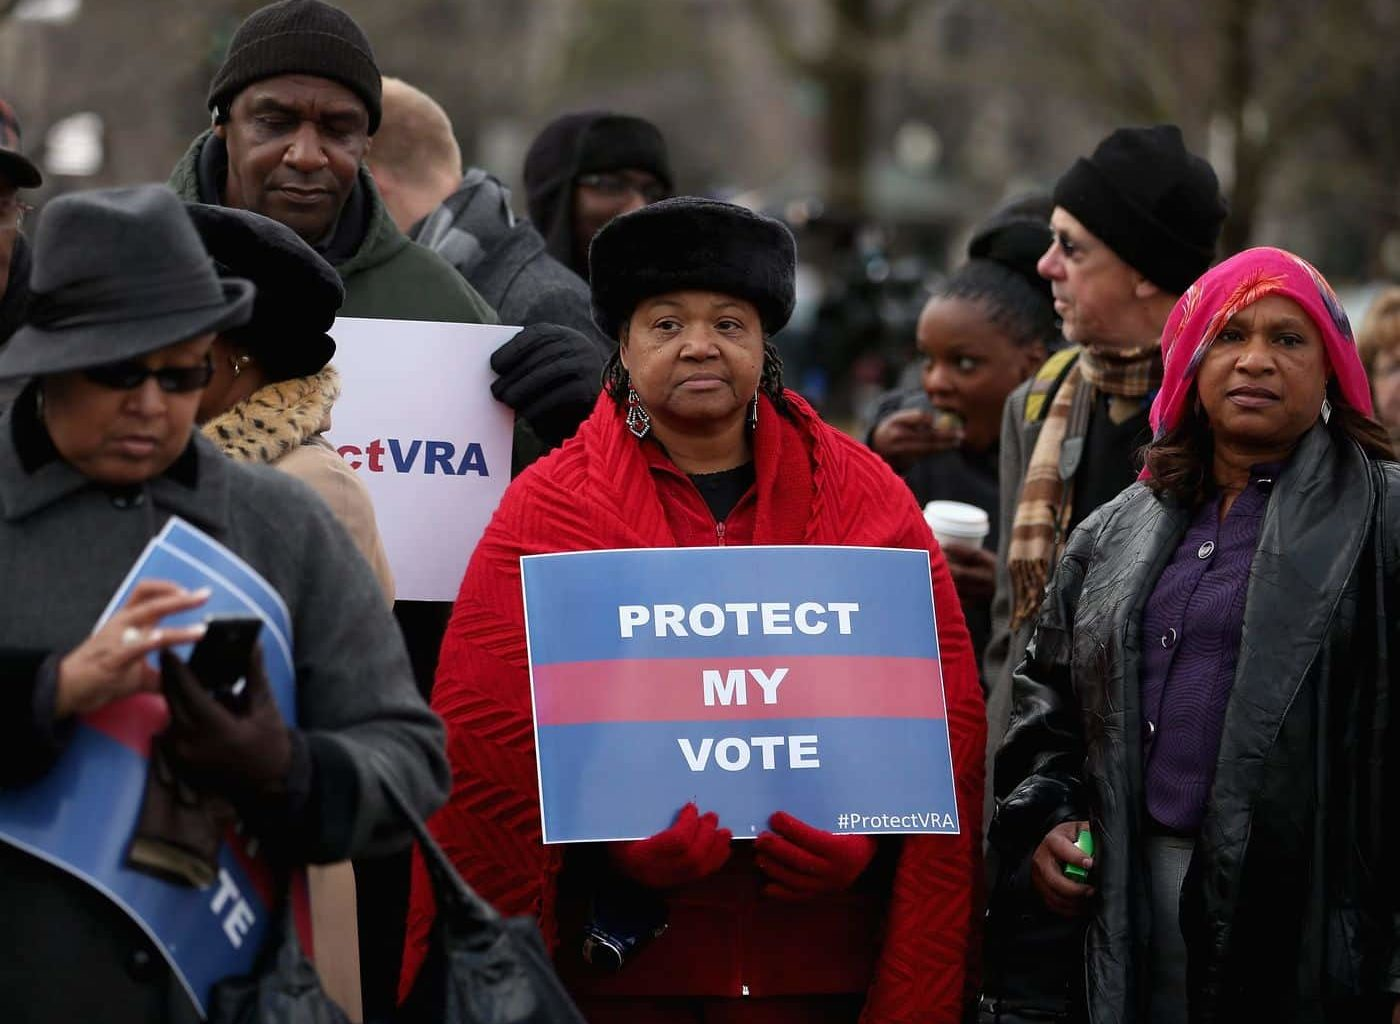 JUSTICE Red State's Racist Gerrymandering Smacked Down by Supreme Court